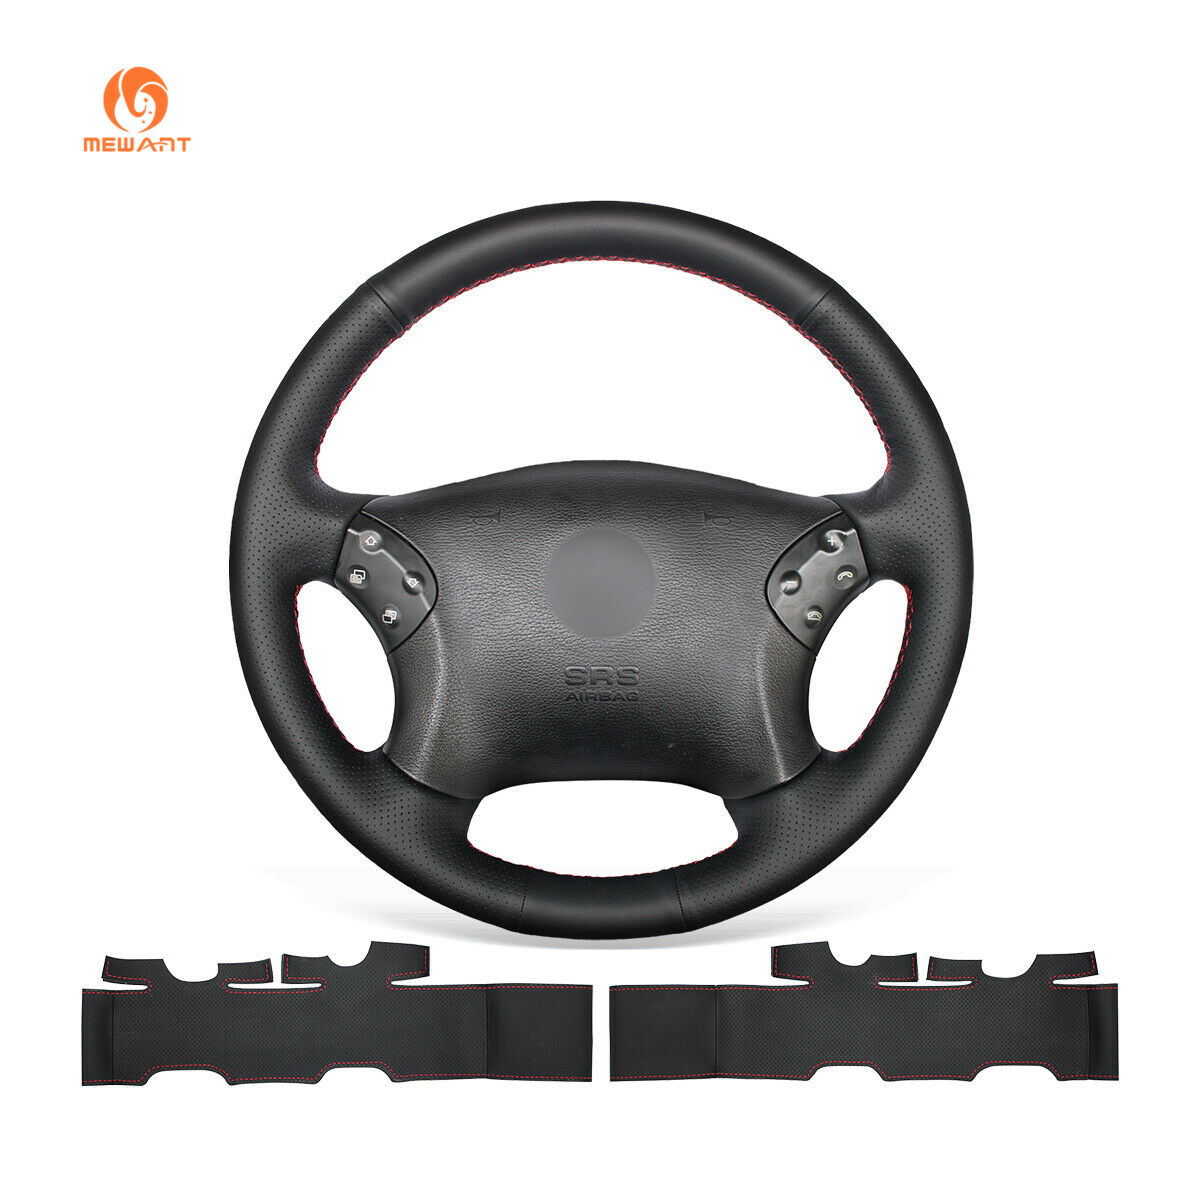 Diy black leather steering wheel cover for mercedes benz for Mercedes benz steering wheel cover